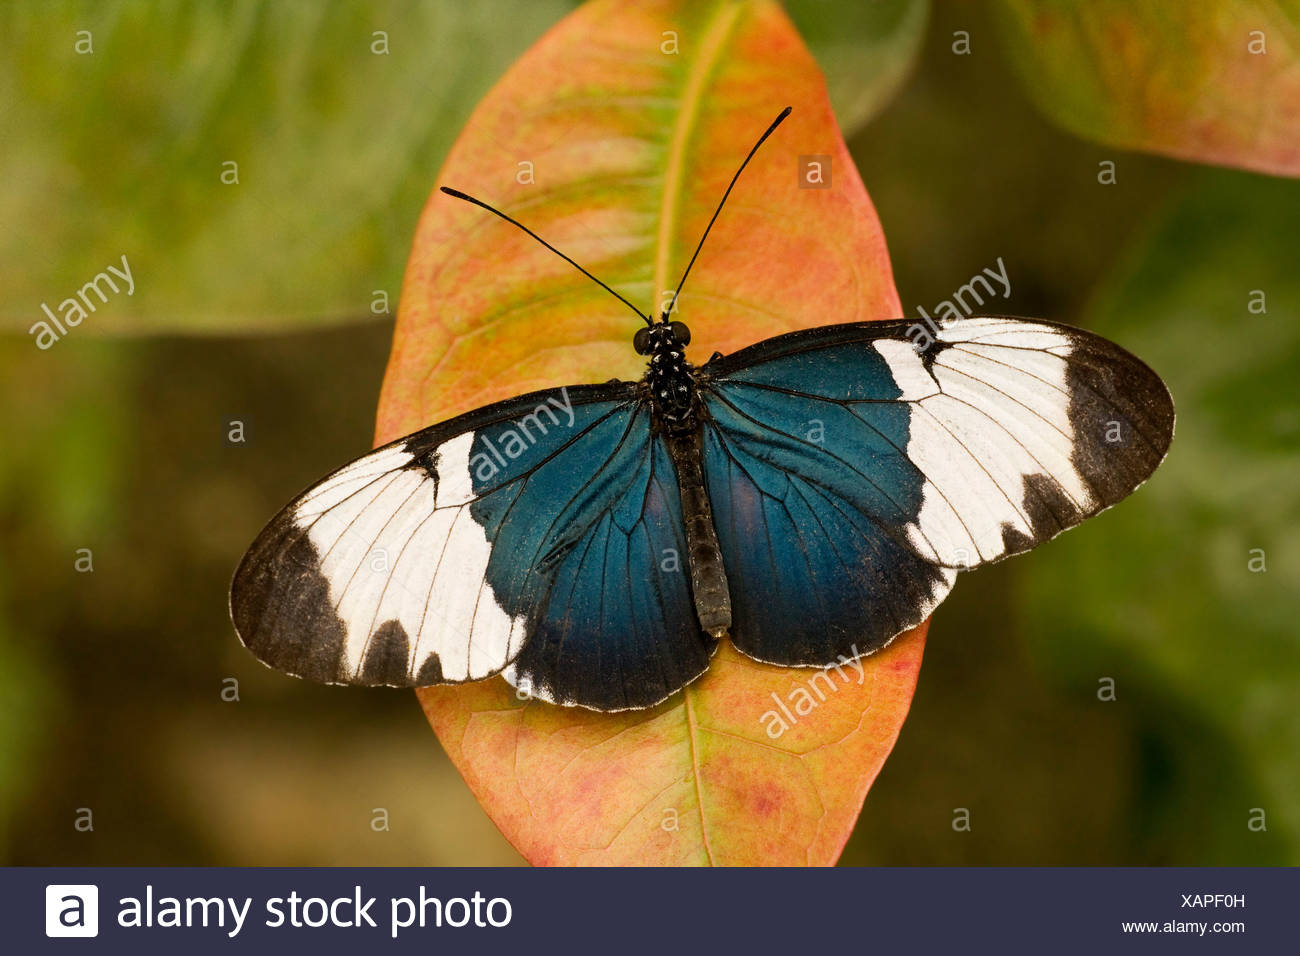 Close-up of a Sapho Longwing butterfly (Heliconius sapho) - Stock Image